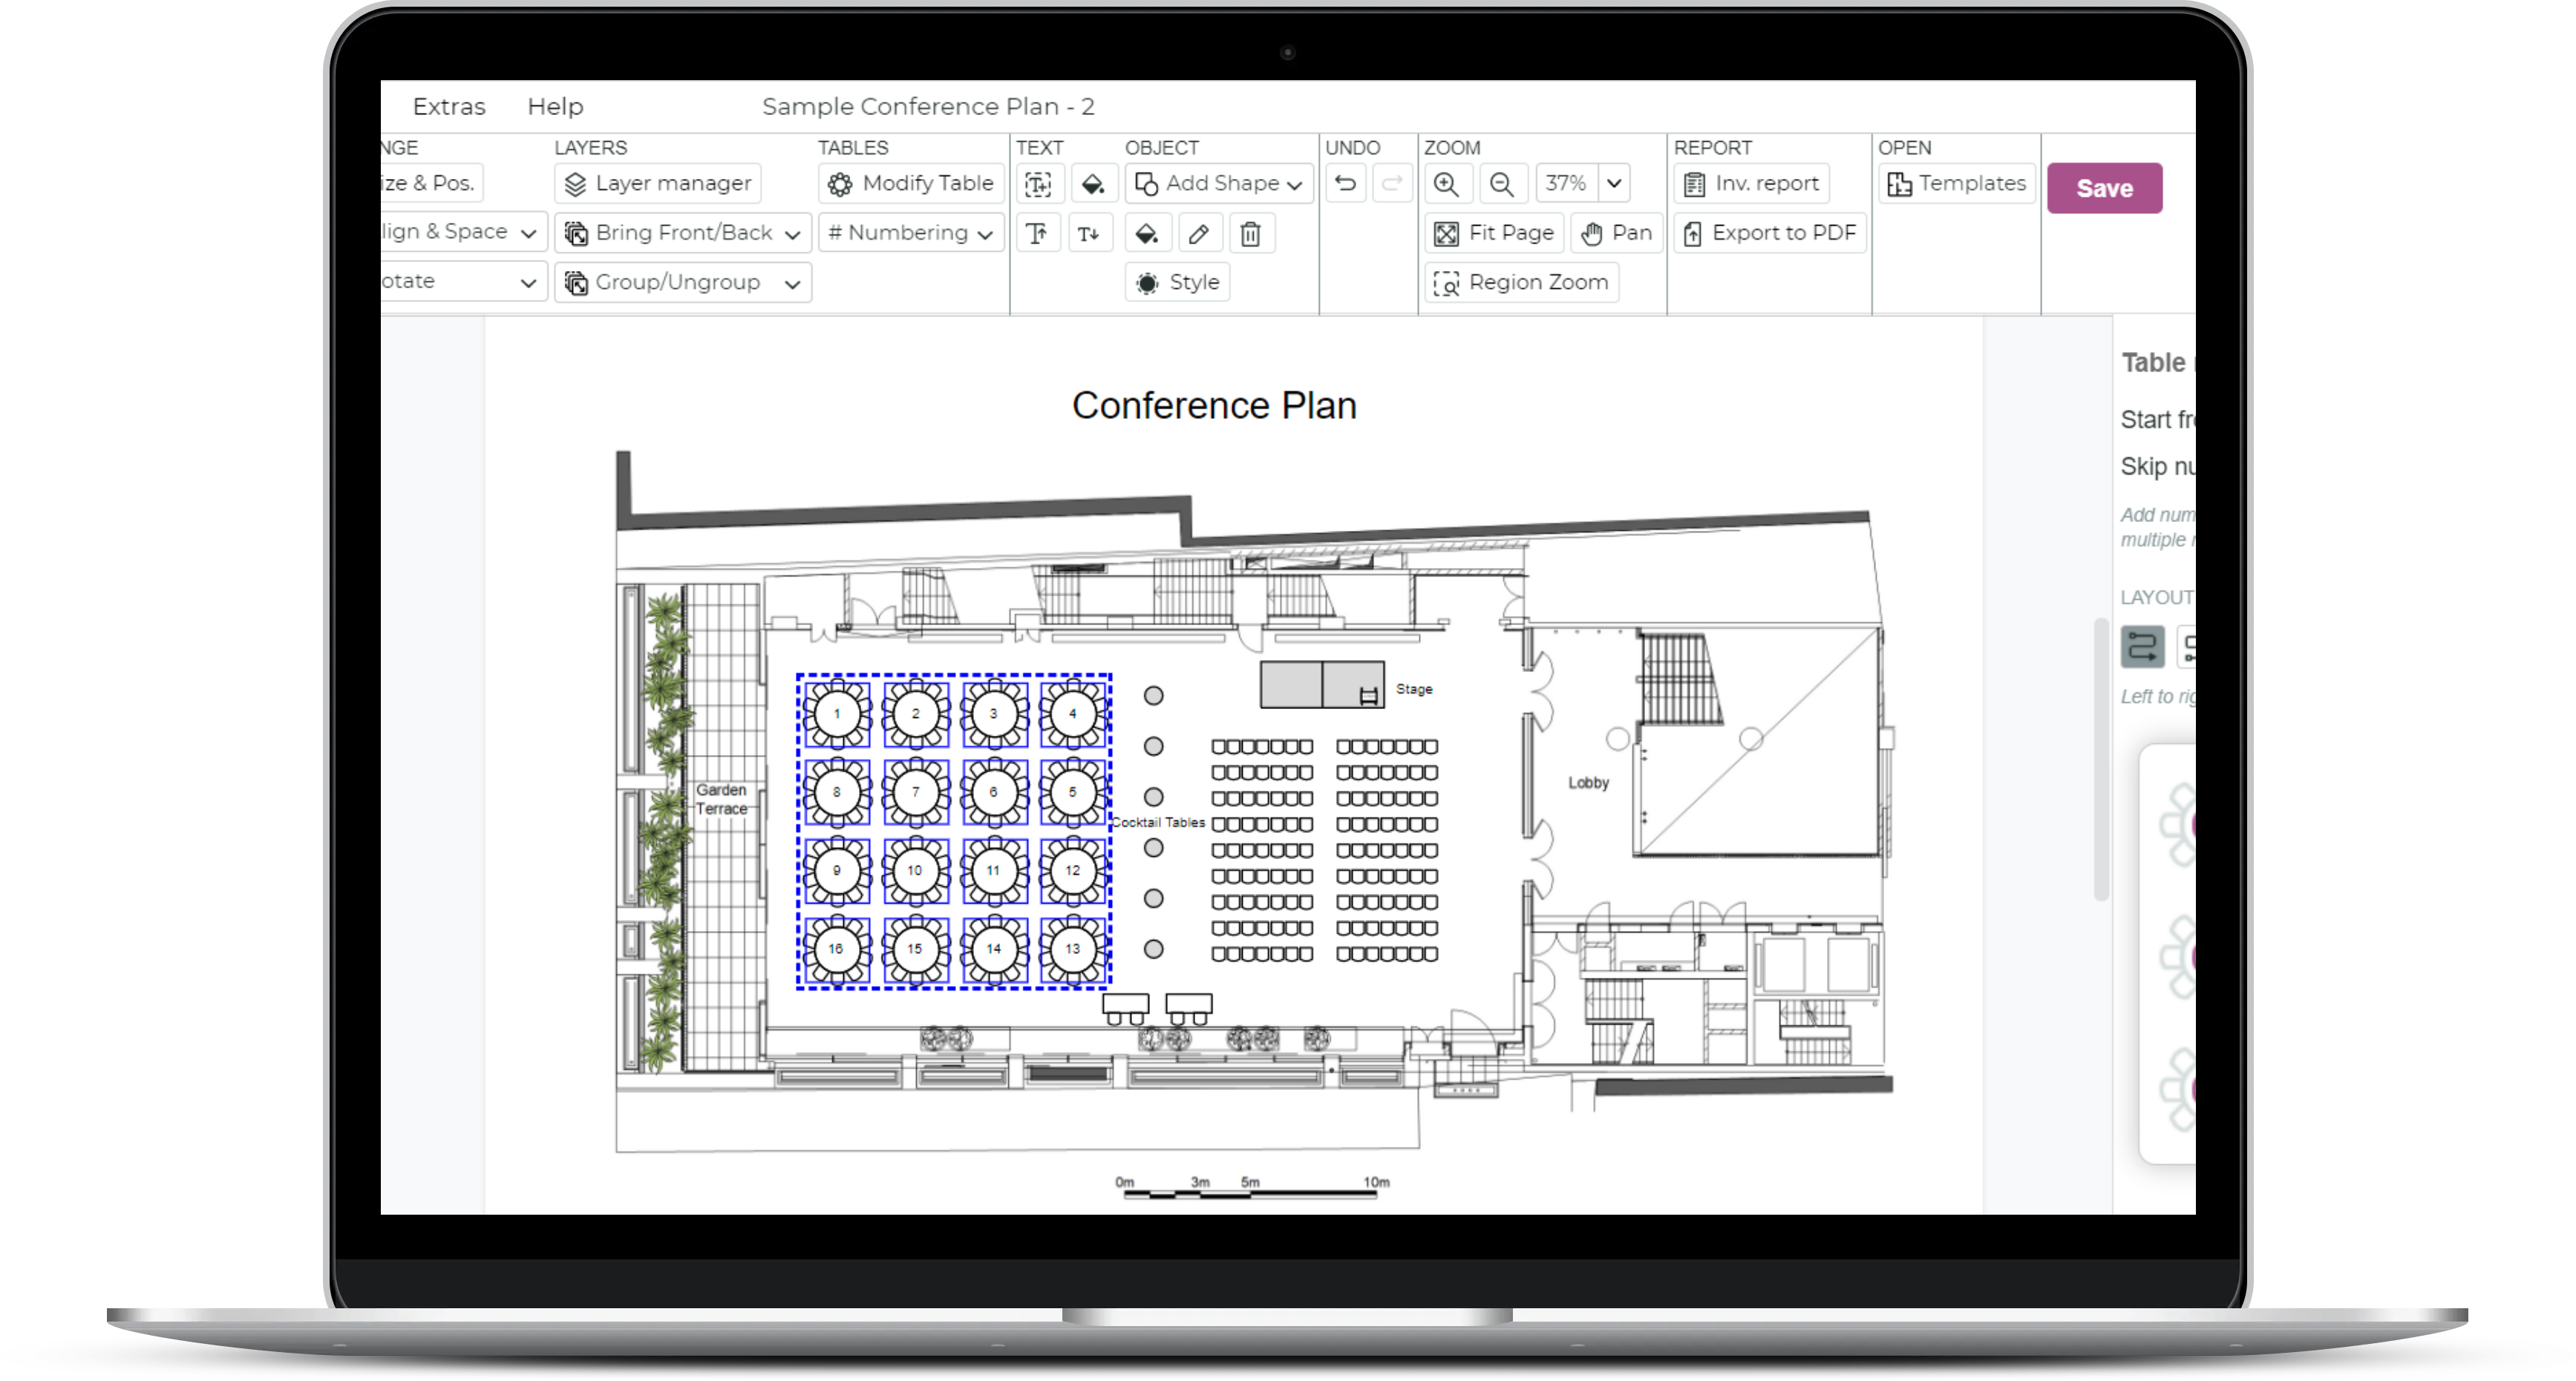 3D Visio Group Function Layout With Tables, Chairs And Stage